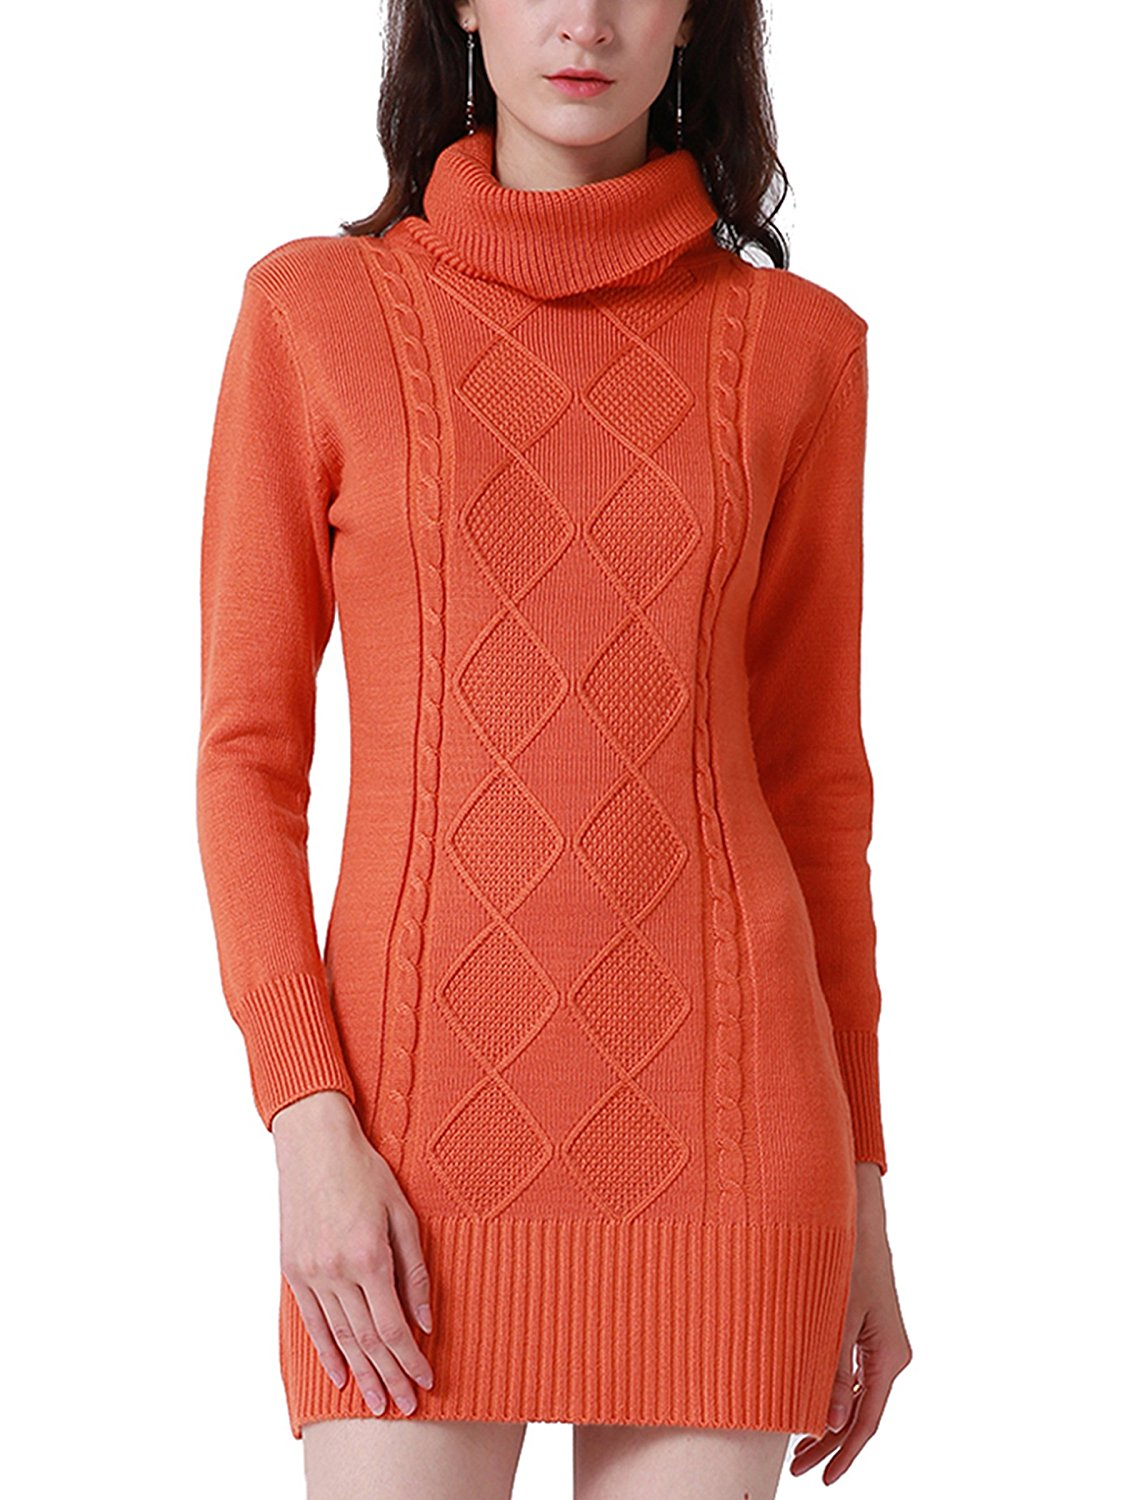 93384750ef8 Get Quotations · MiYang Turtleneck Cable Knit Sweater Tunic Dress For Women  Bodycon Pullovers